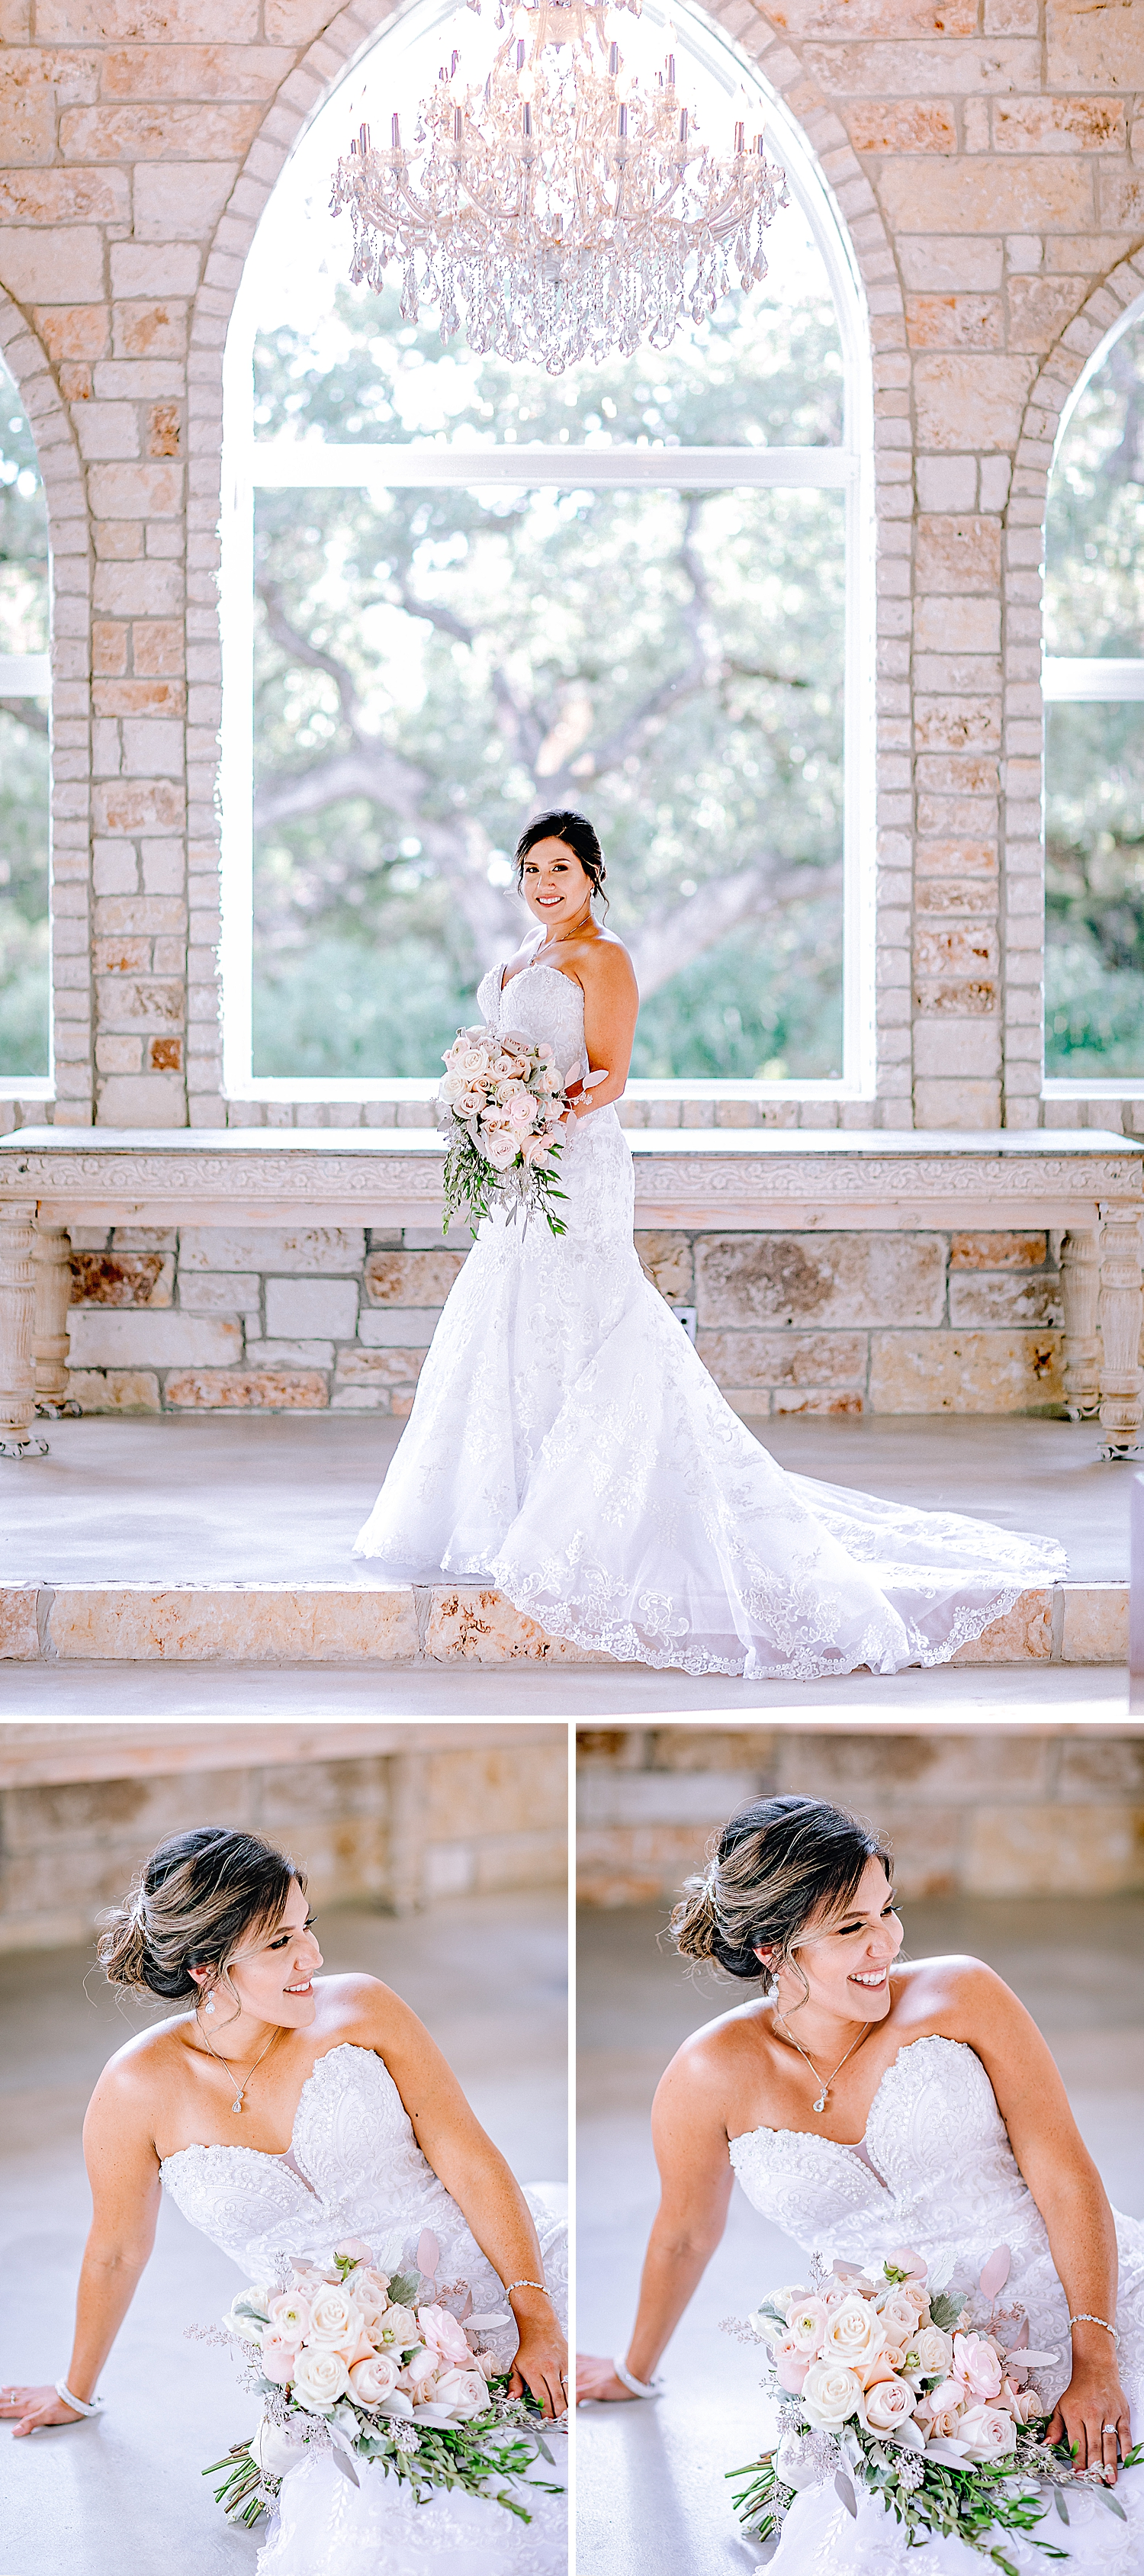 Carly-Barton-Photography-Bridal-Photos-Chadelier-of-Gruene-New-Braunfels-Wedding-Photographer_0008.jpg